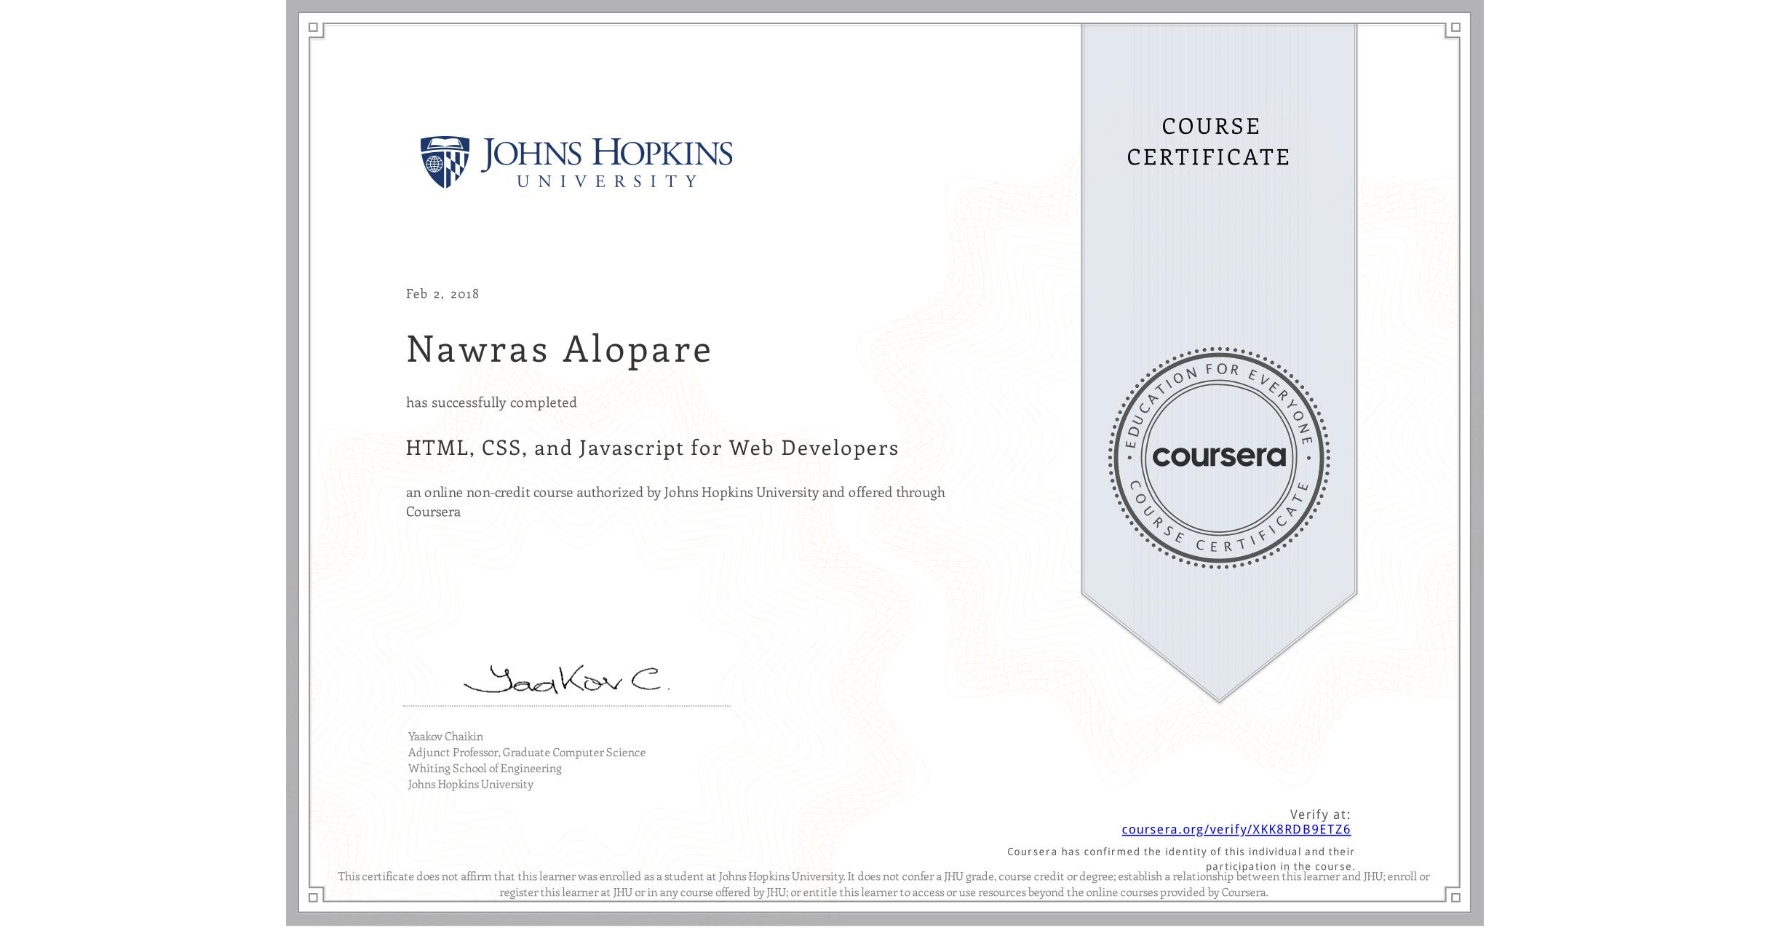 View certificate for Nawras Alopare, HTML, CSS, and Javascript for Web Developers, an online non-credit course authorized by Johns Hopkins University and offered through Coursera